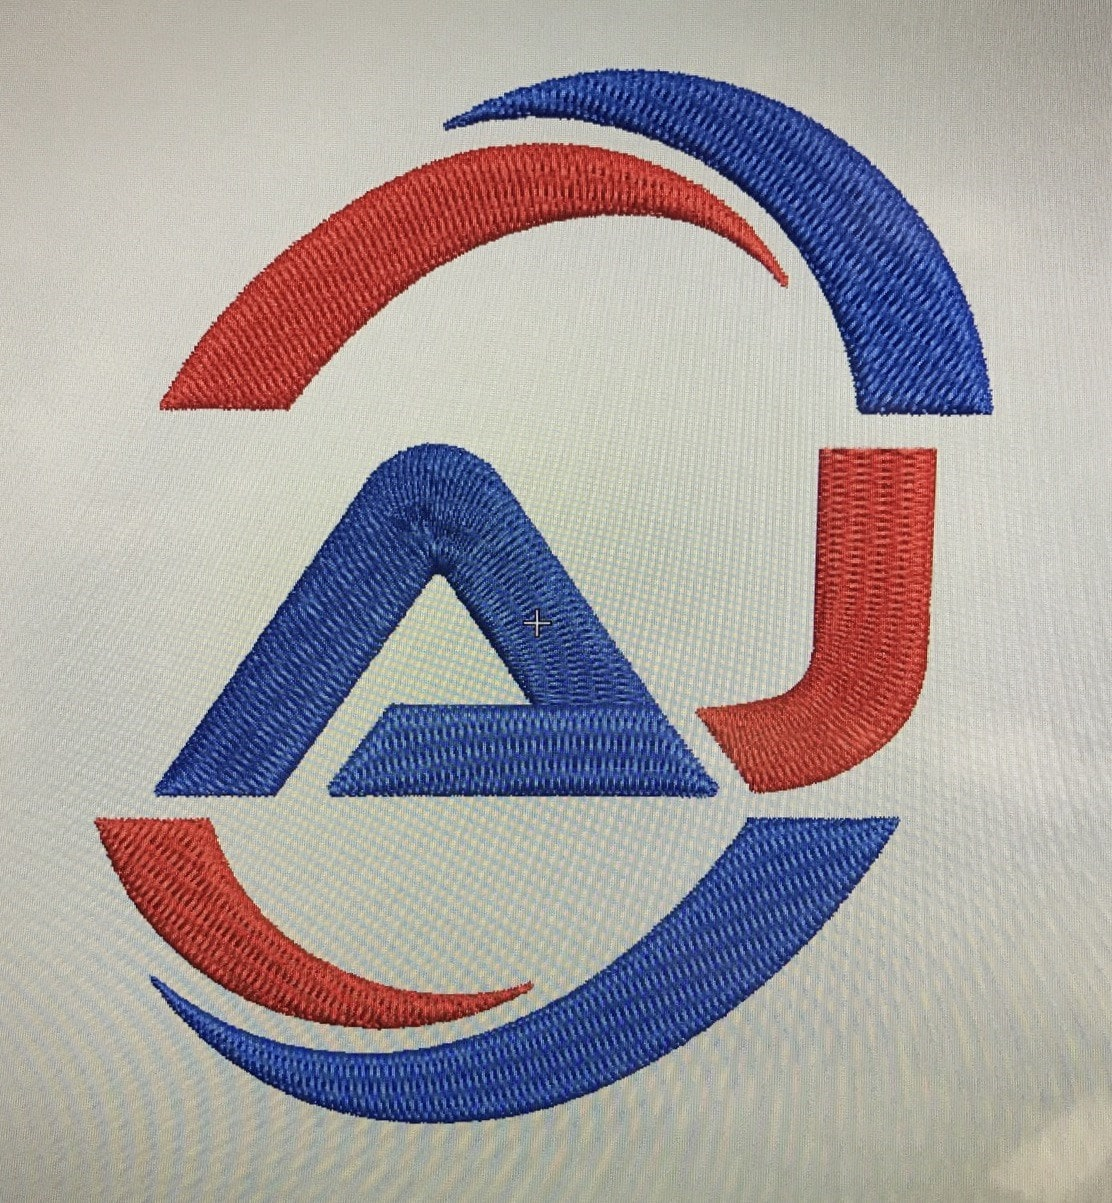 A&J appliance installation and repair inc